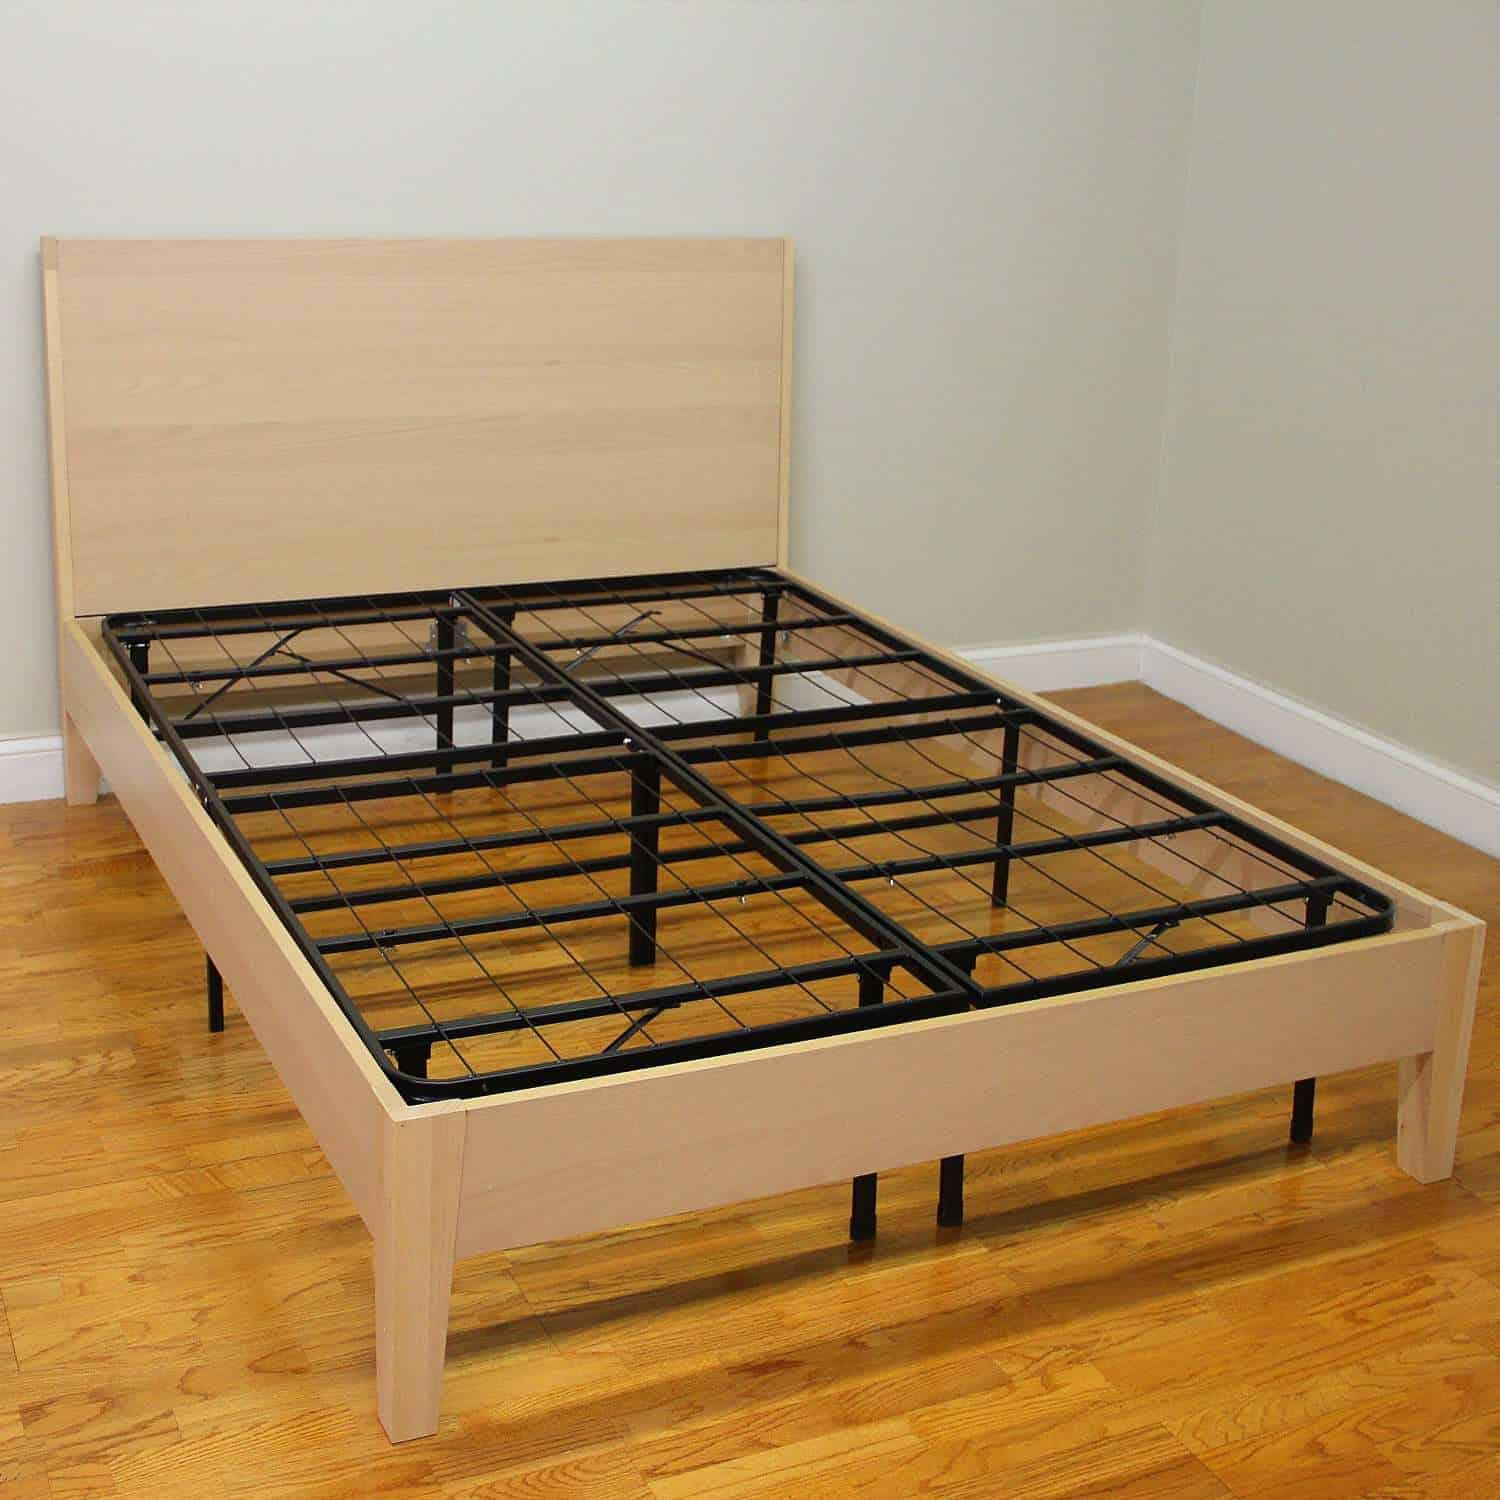 Beds without box springs